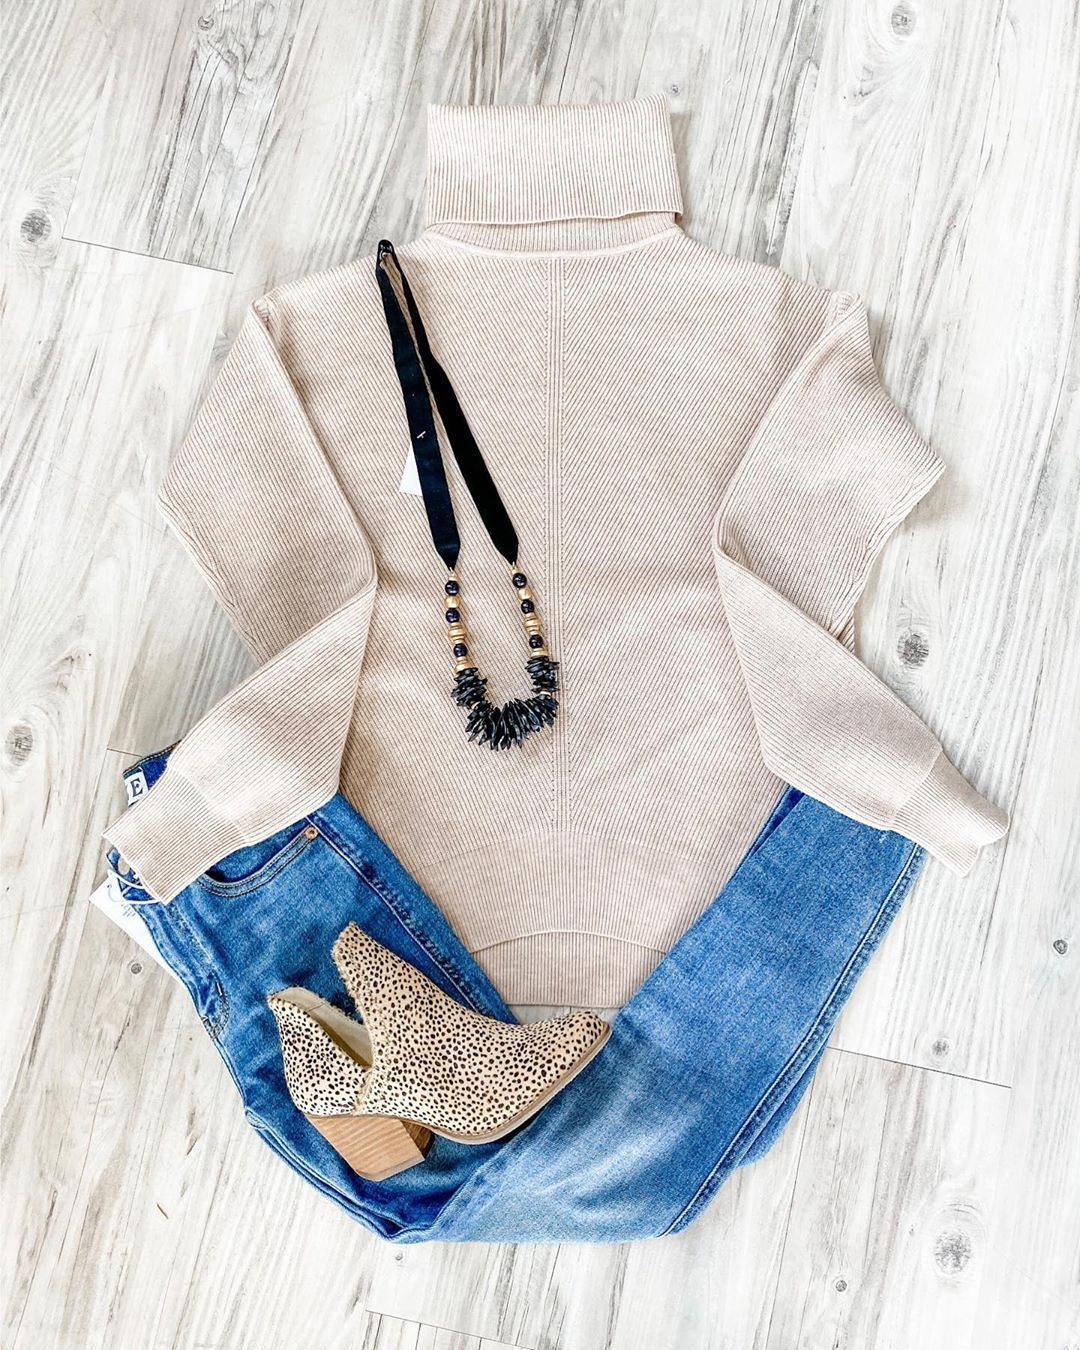 Bleu Blush Boutique On Instagram Love This Classy Look With A Little Sass Shopbb Bleublushboutique Shopbl How To Look Classy Insta Fashion Blush Boutique